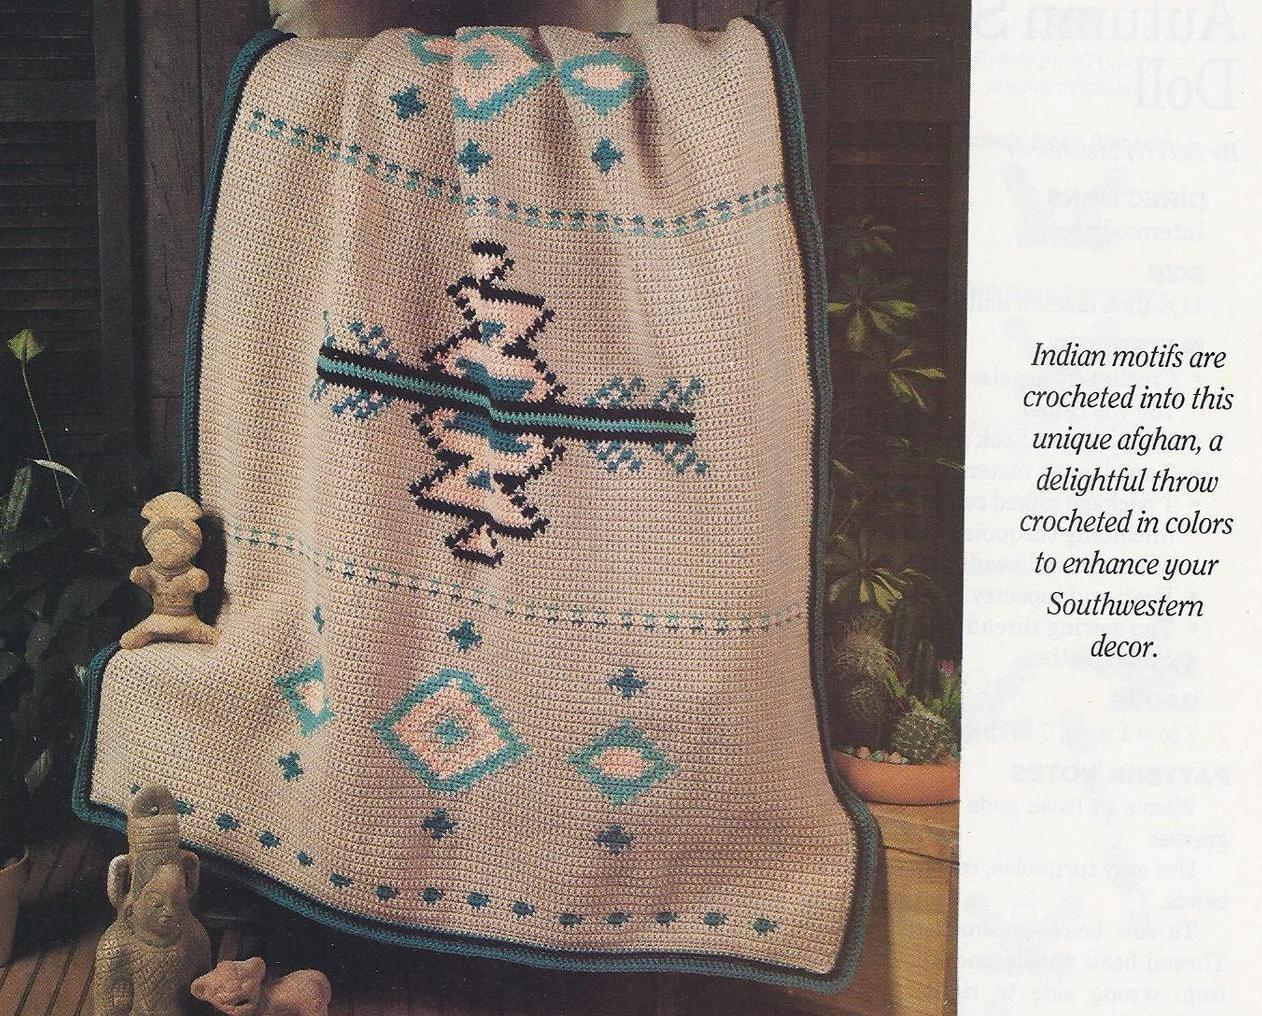 Crochet Patterns Native American : crochet_pattern_566.jpg